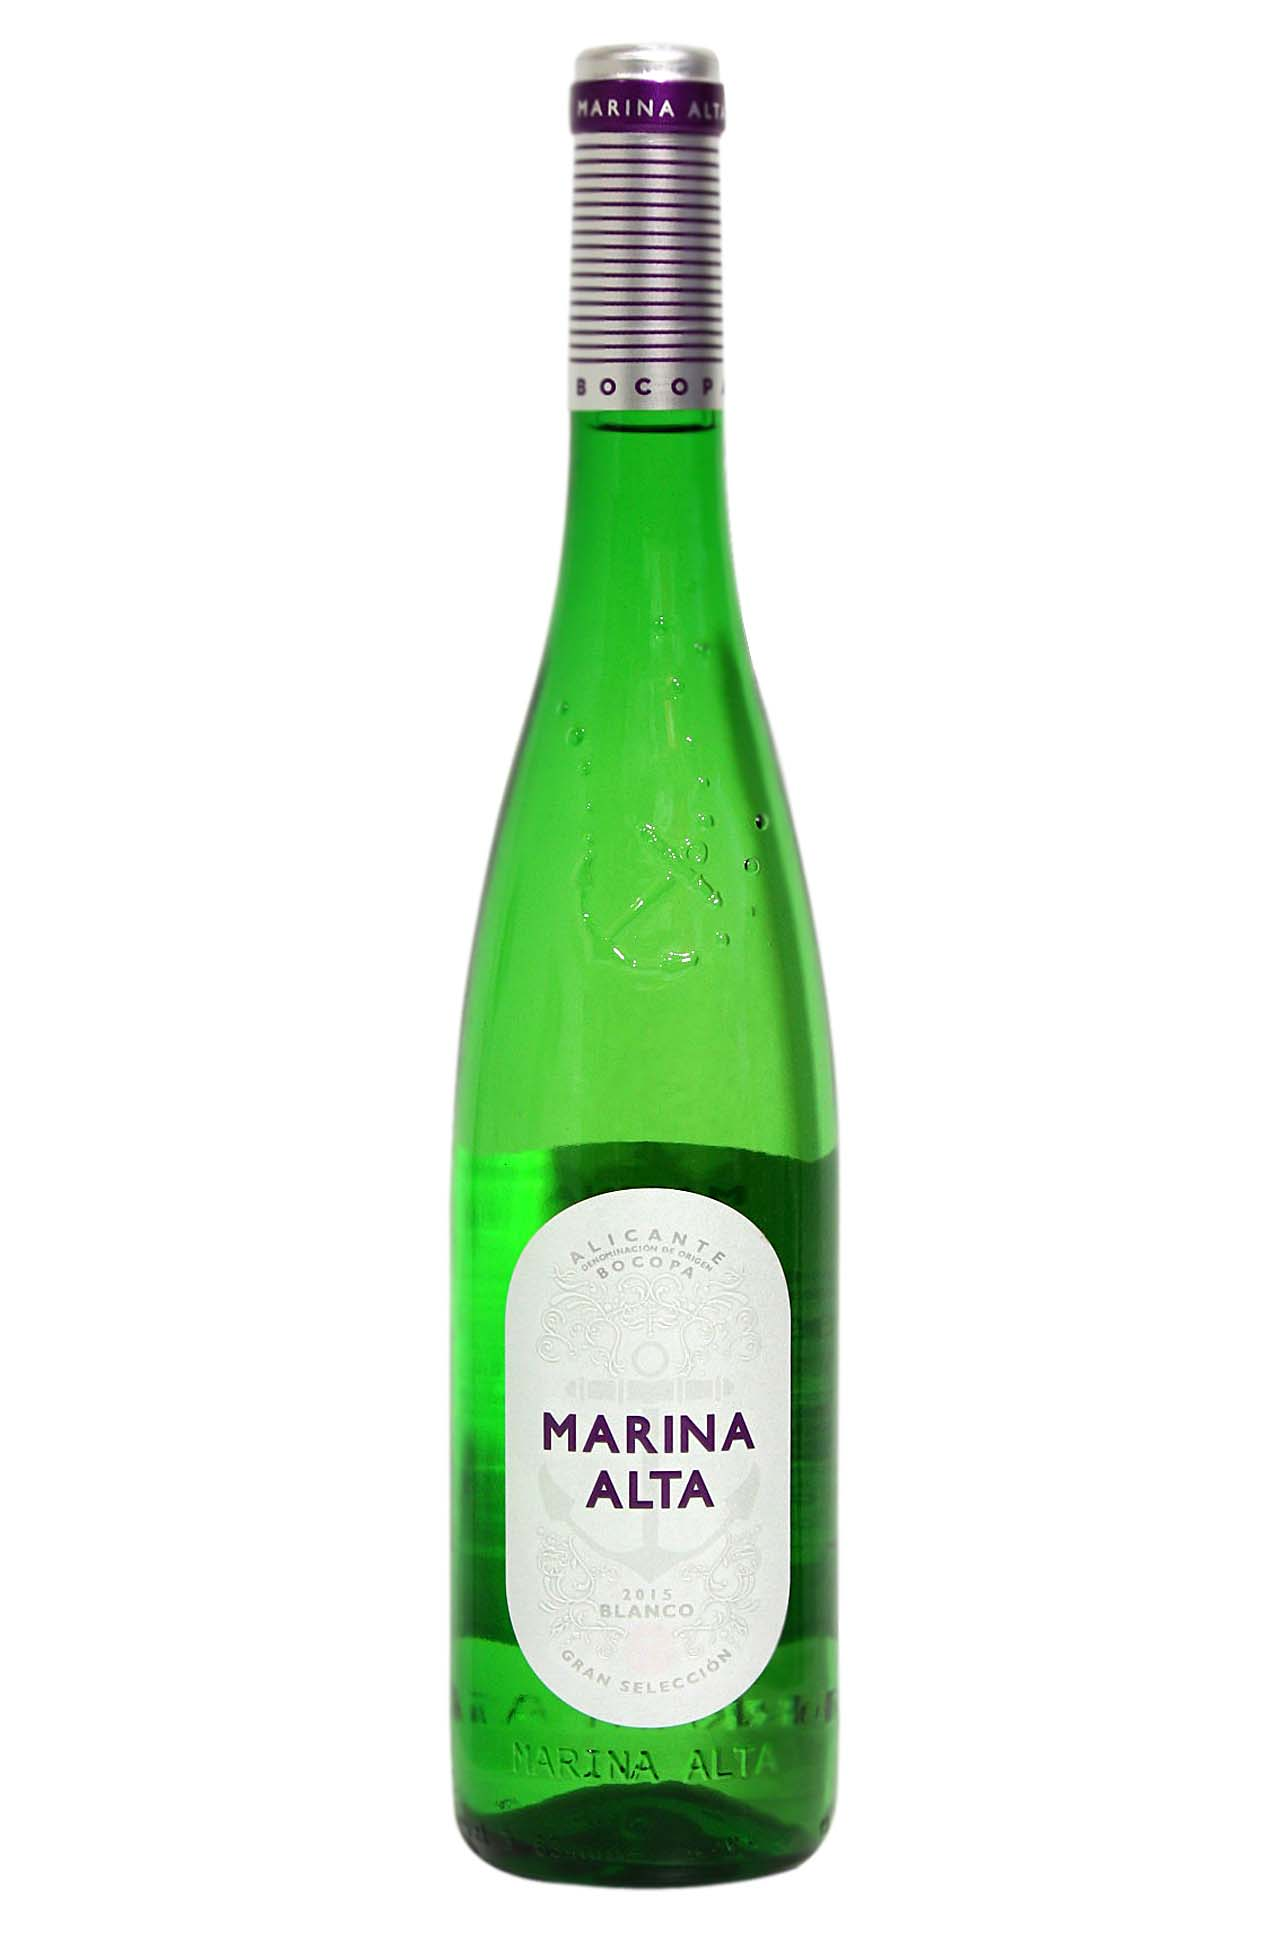 Marina Alta white wine